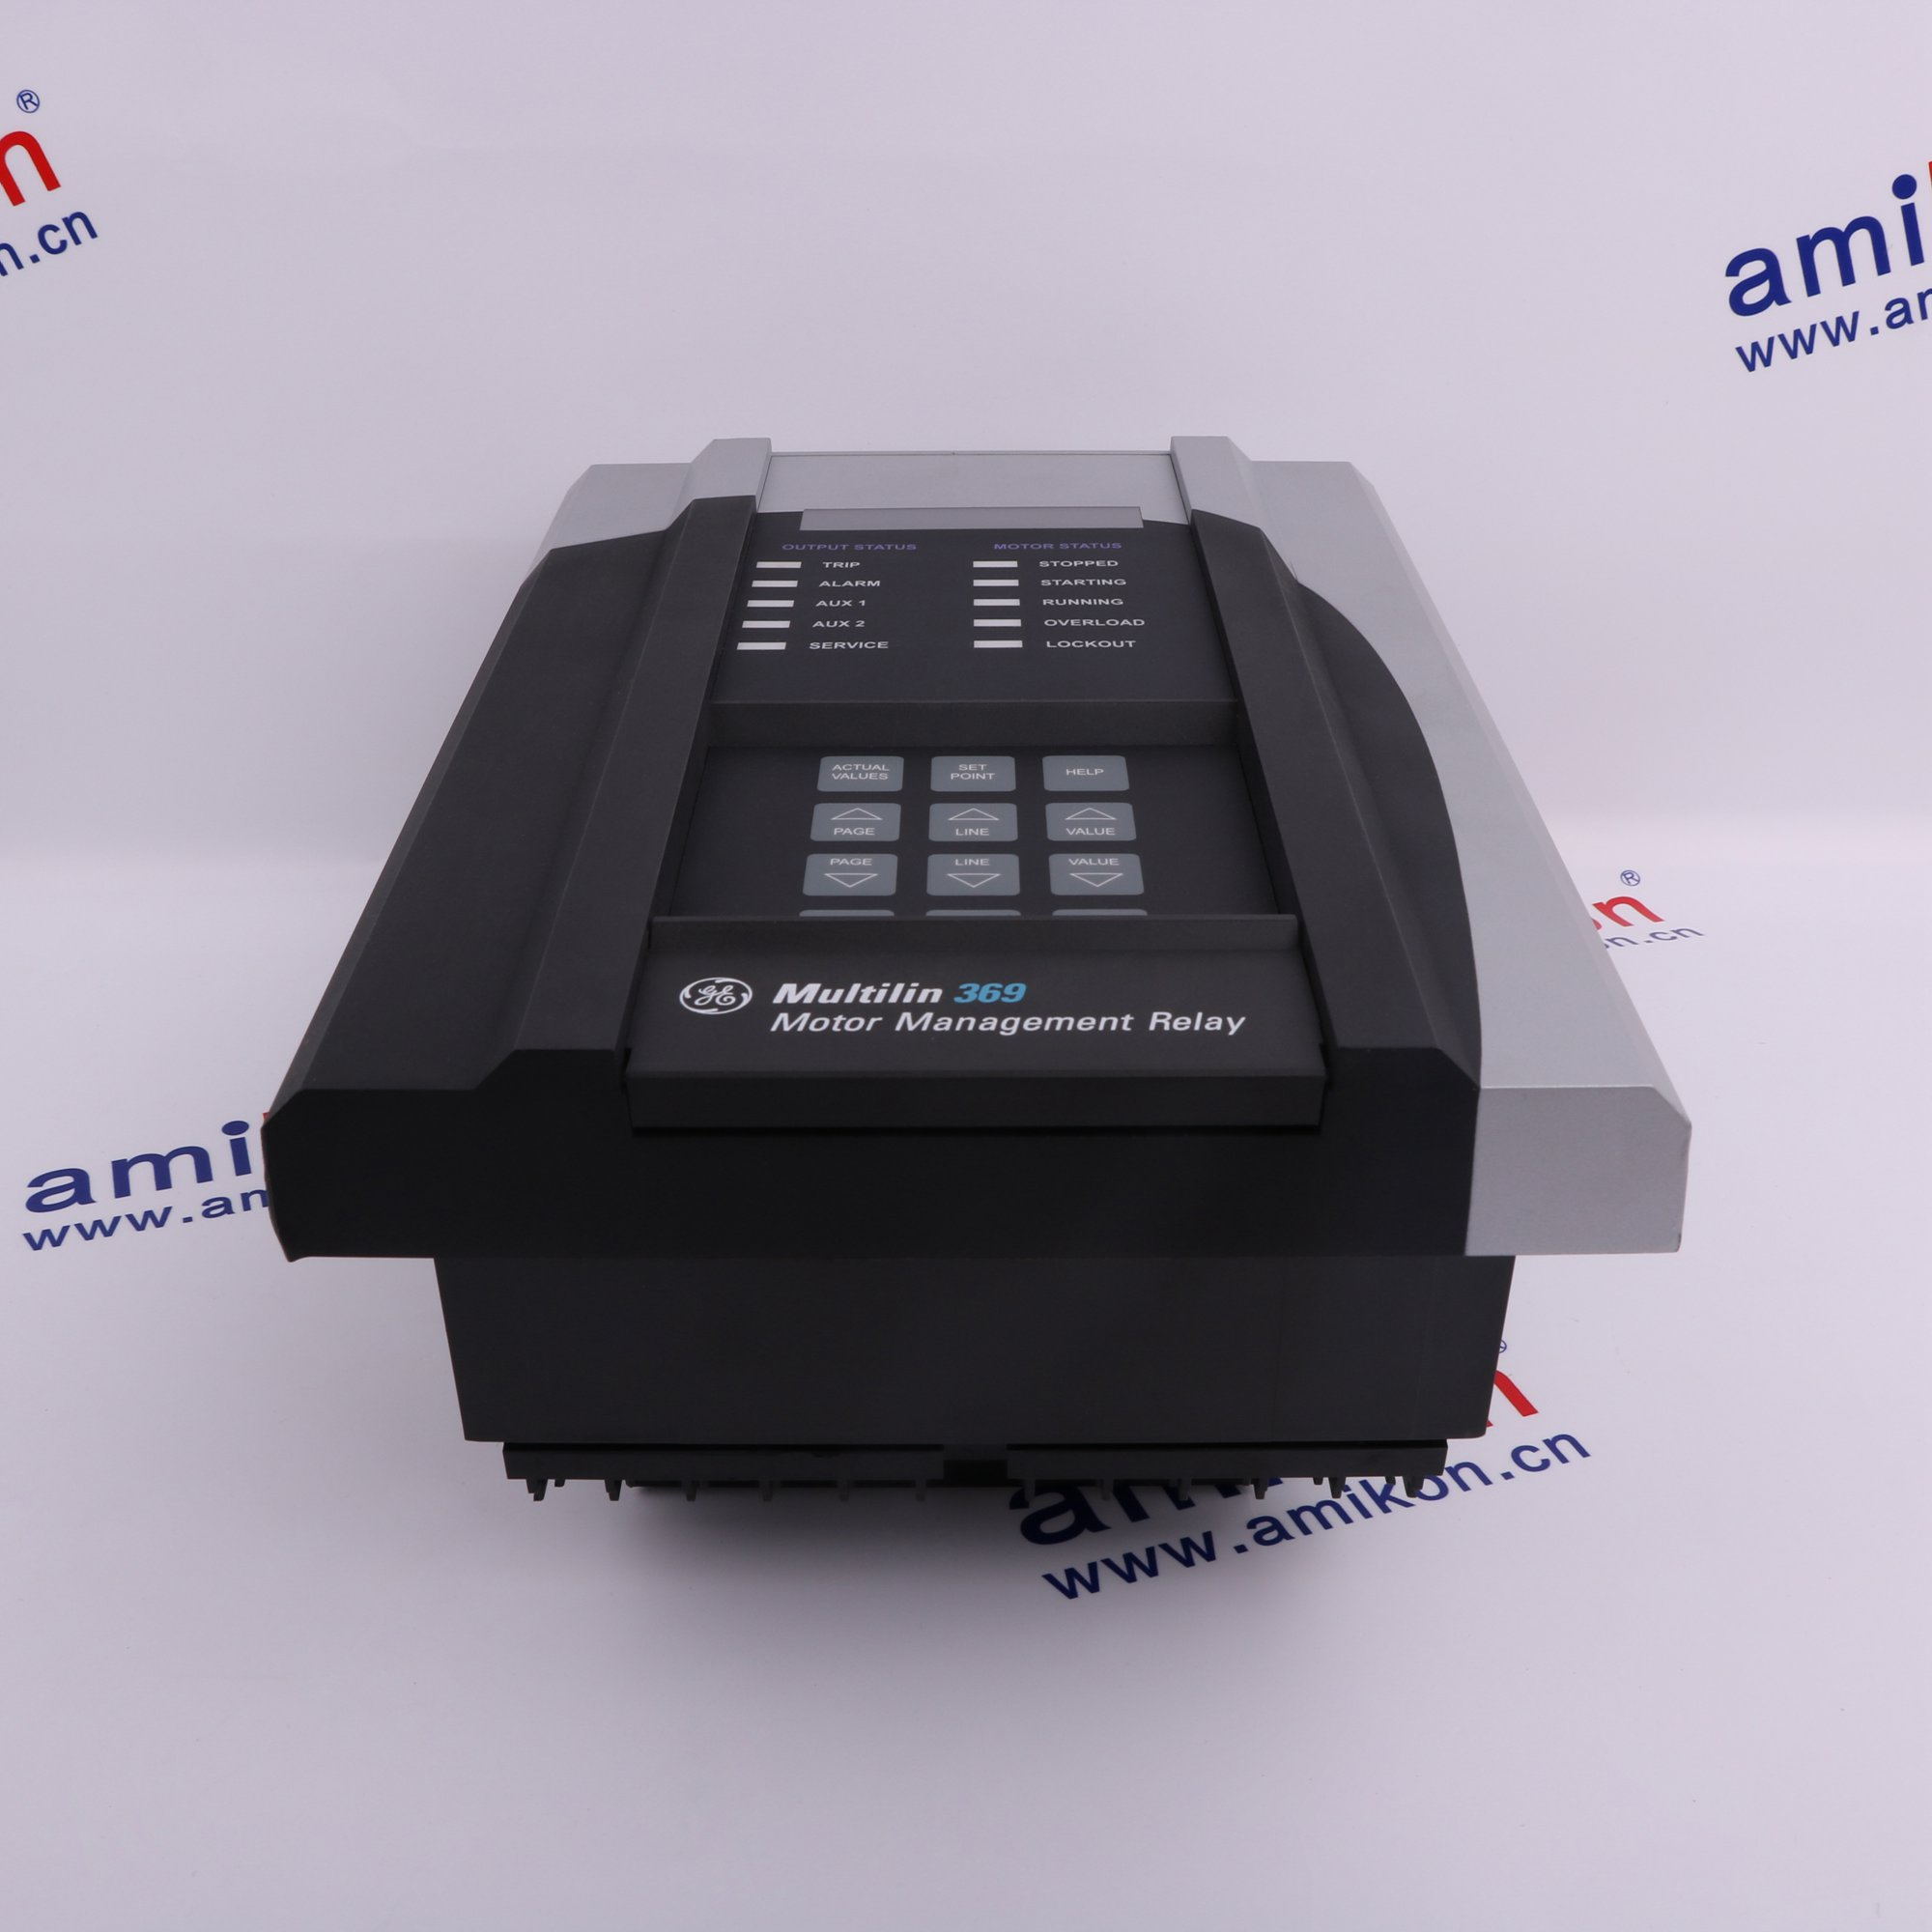 IN STOCK GE IC693ACC302  PLS CONTACT:sales8@amikon.cn